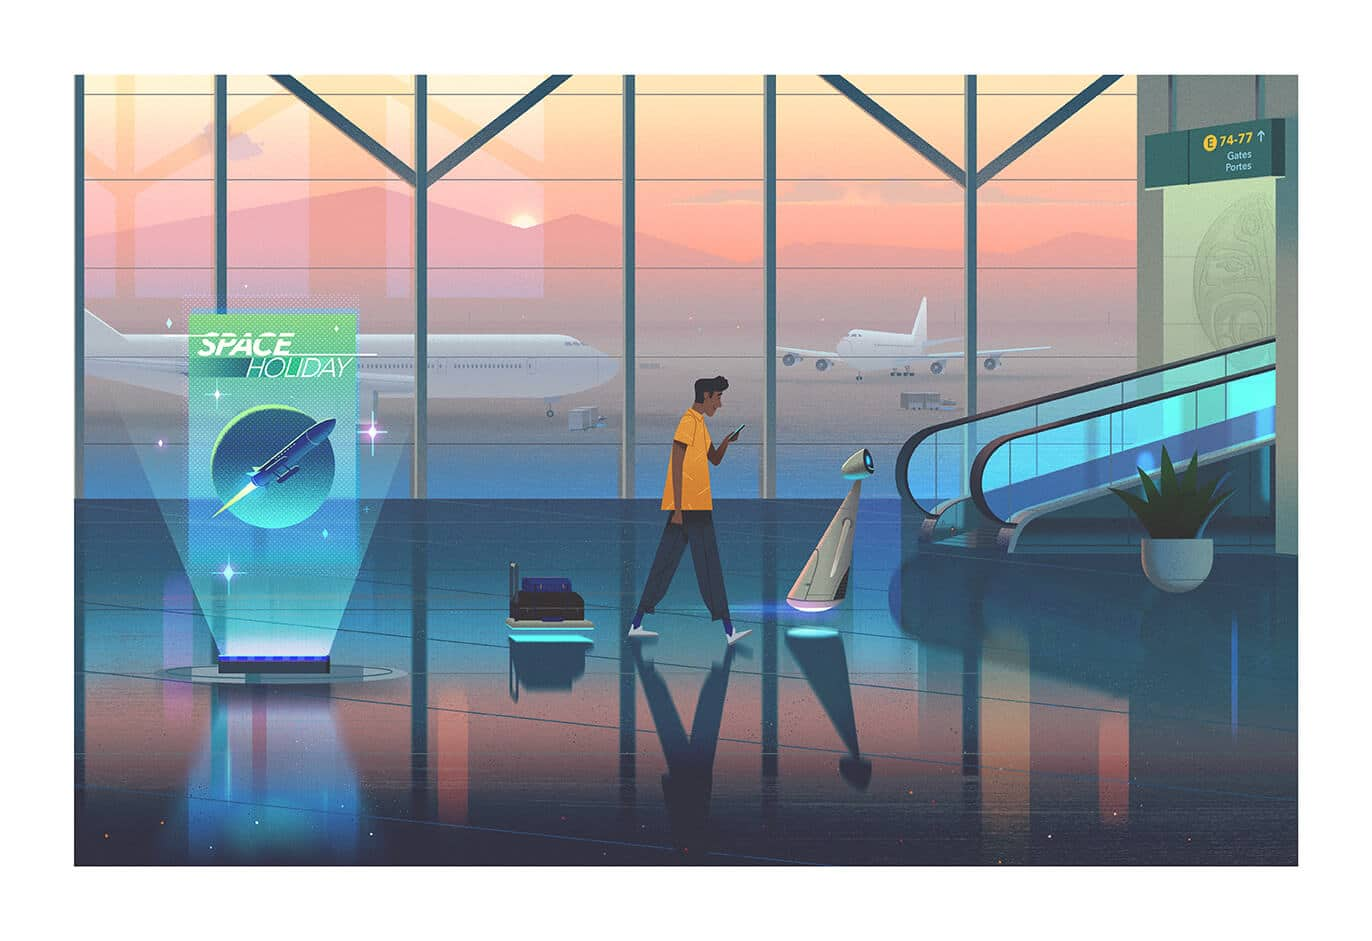 YVR 2037: Imagining the Future of Airports